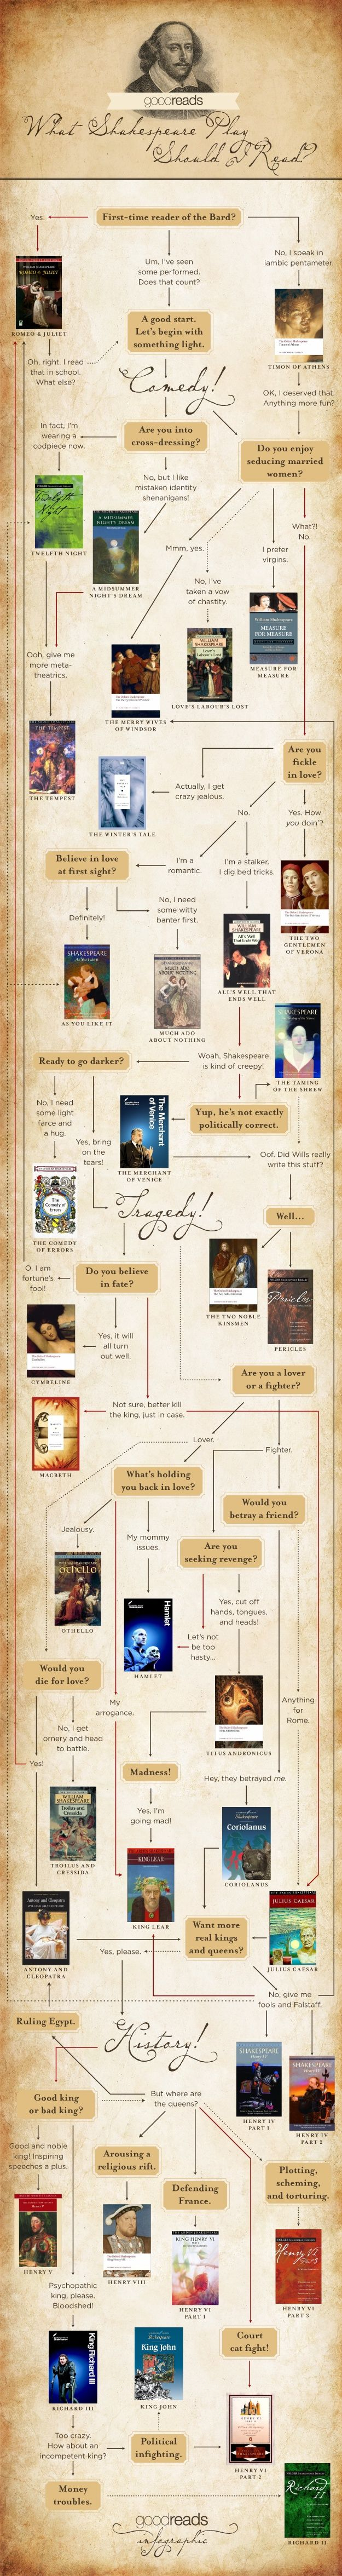 What Shakespeare Play Should I Read?: Happy Birthday, Shakespeare Stuff, Shakespeare Plays, Shakespeare Infographic, Do You, Williams Shakespeare, Shakespeare Books, De Shakespeare, Bard